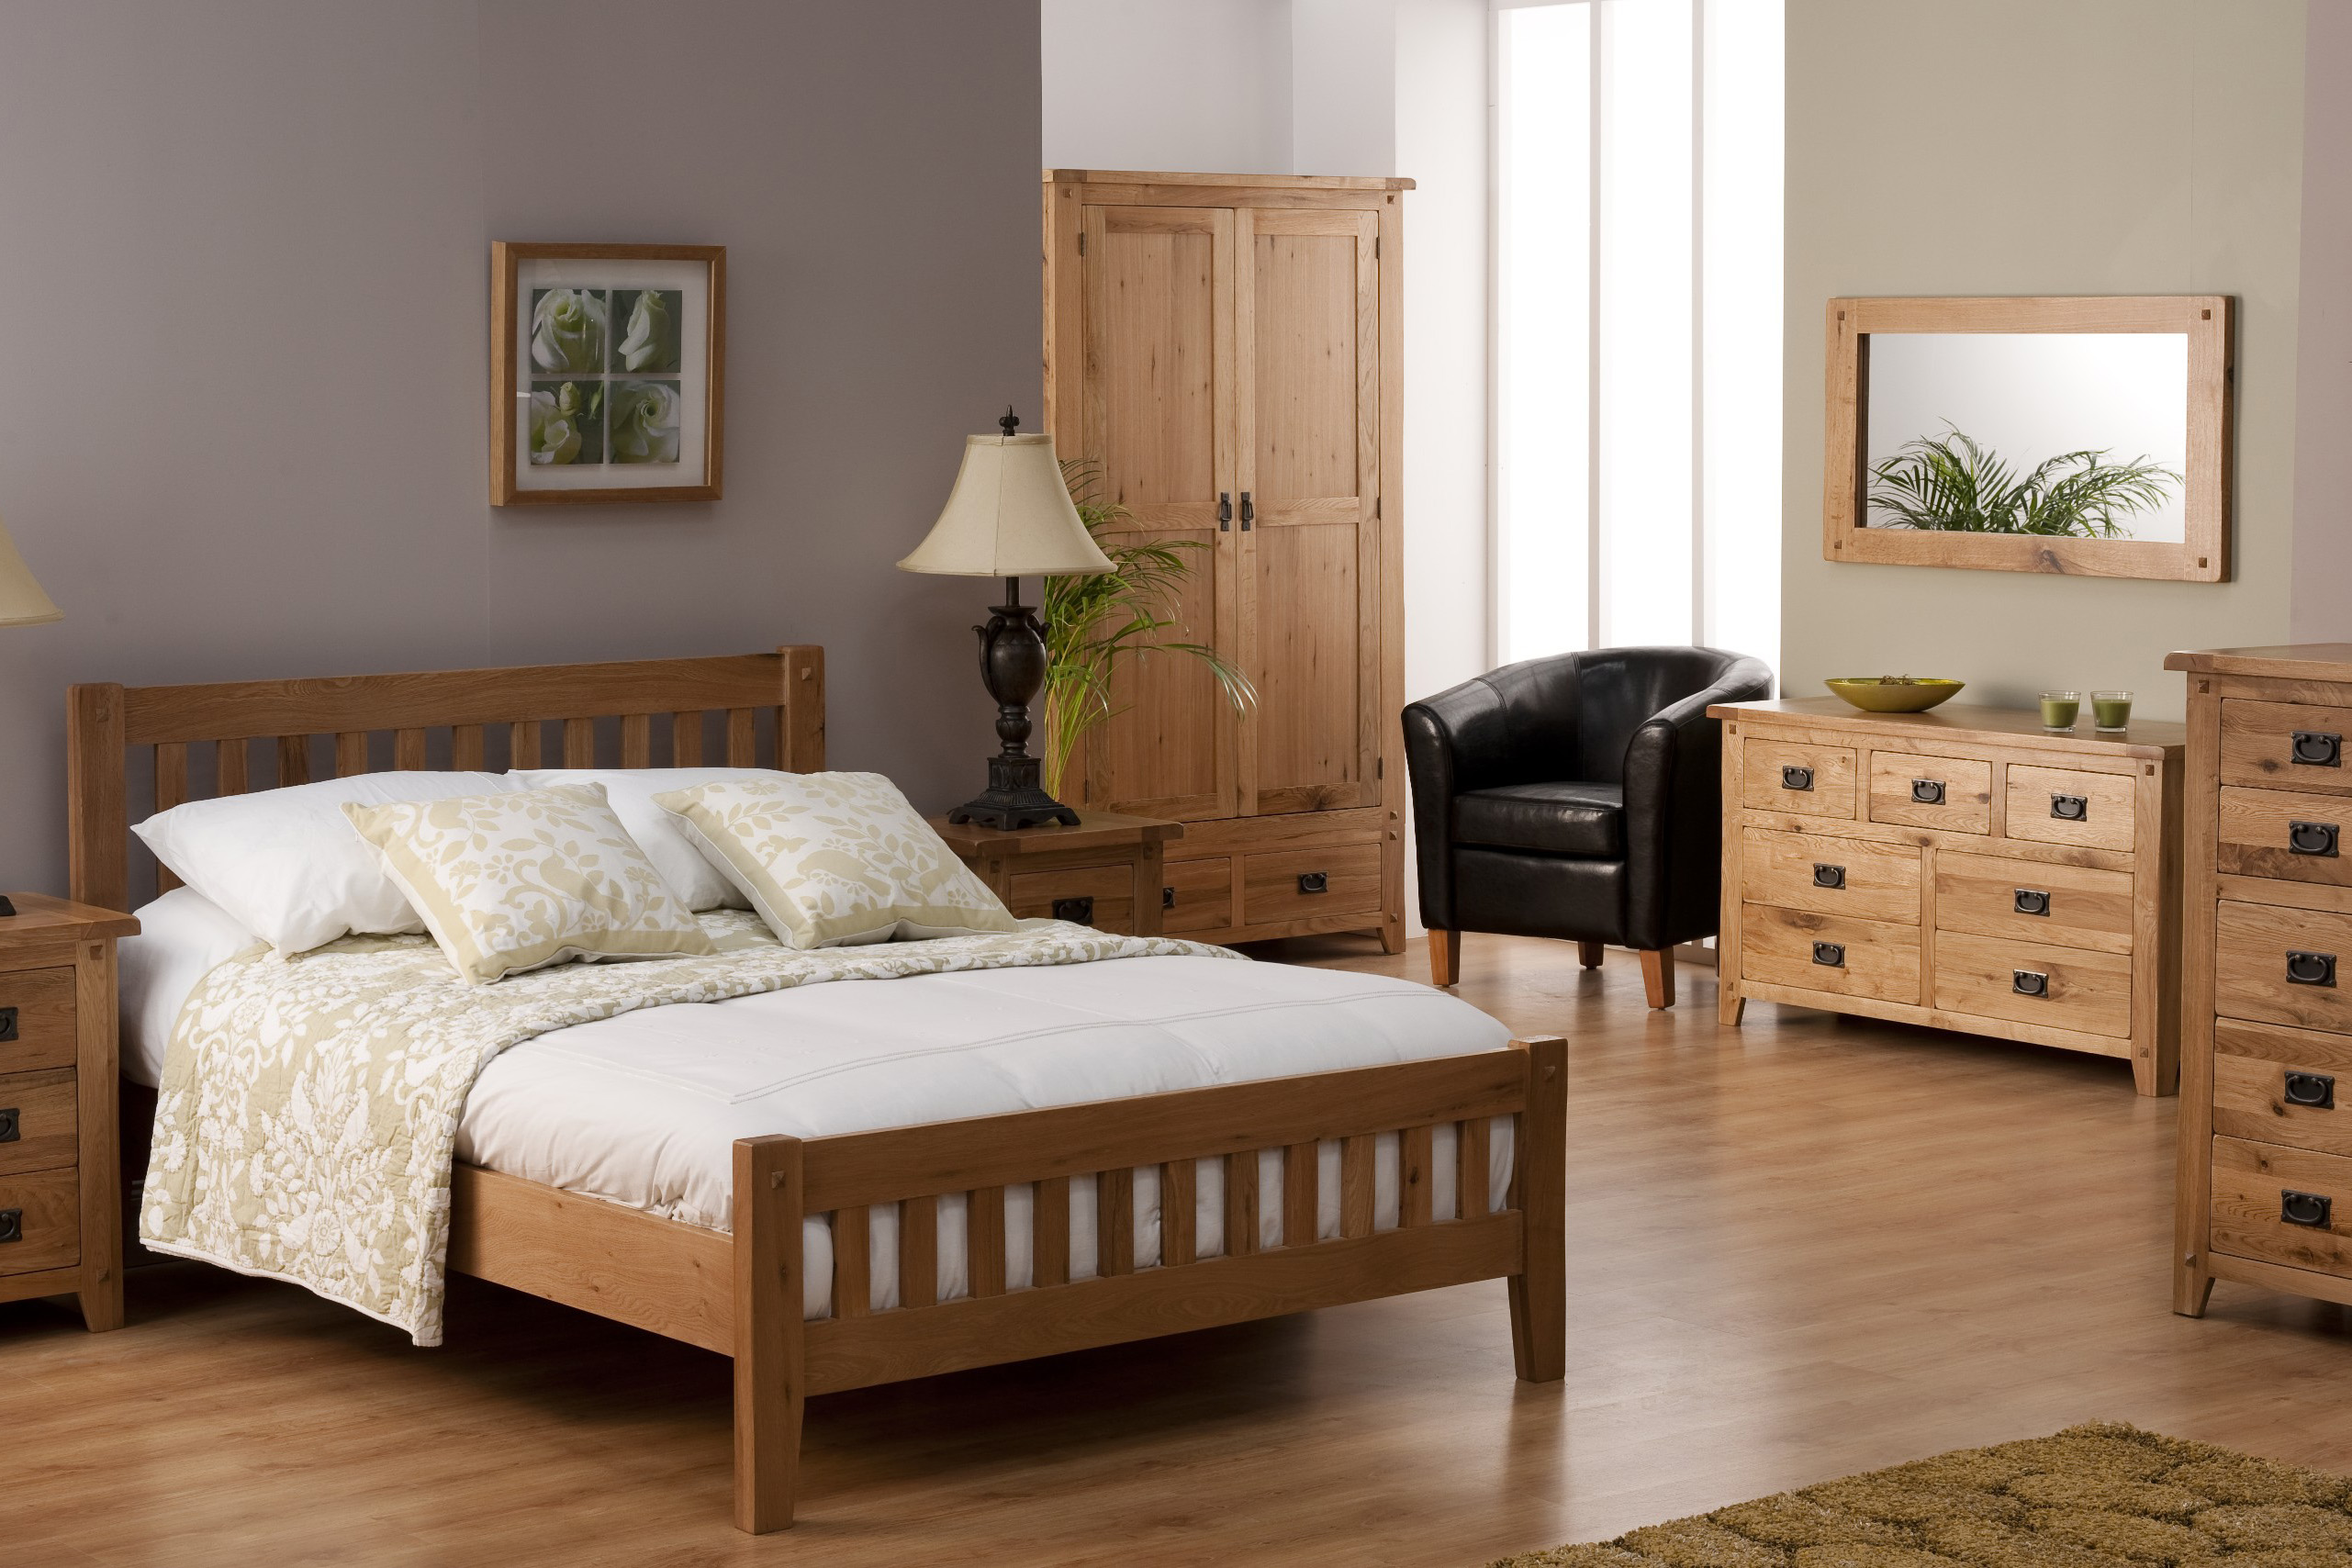 Bedroom in Country Wooden Style